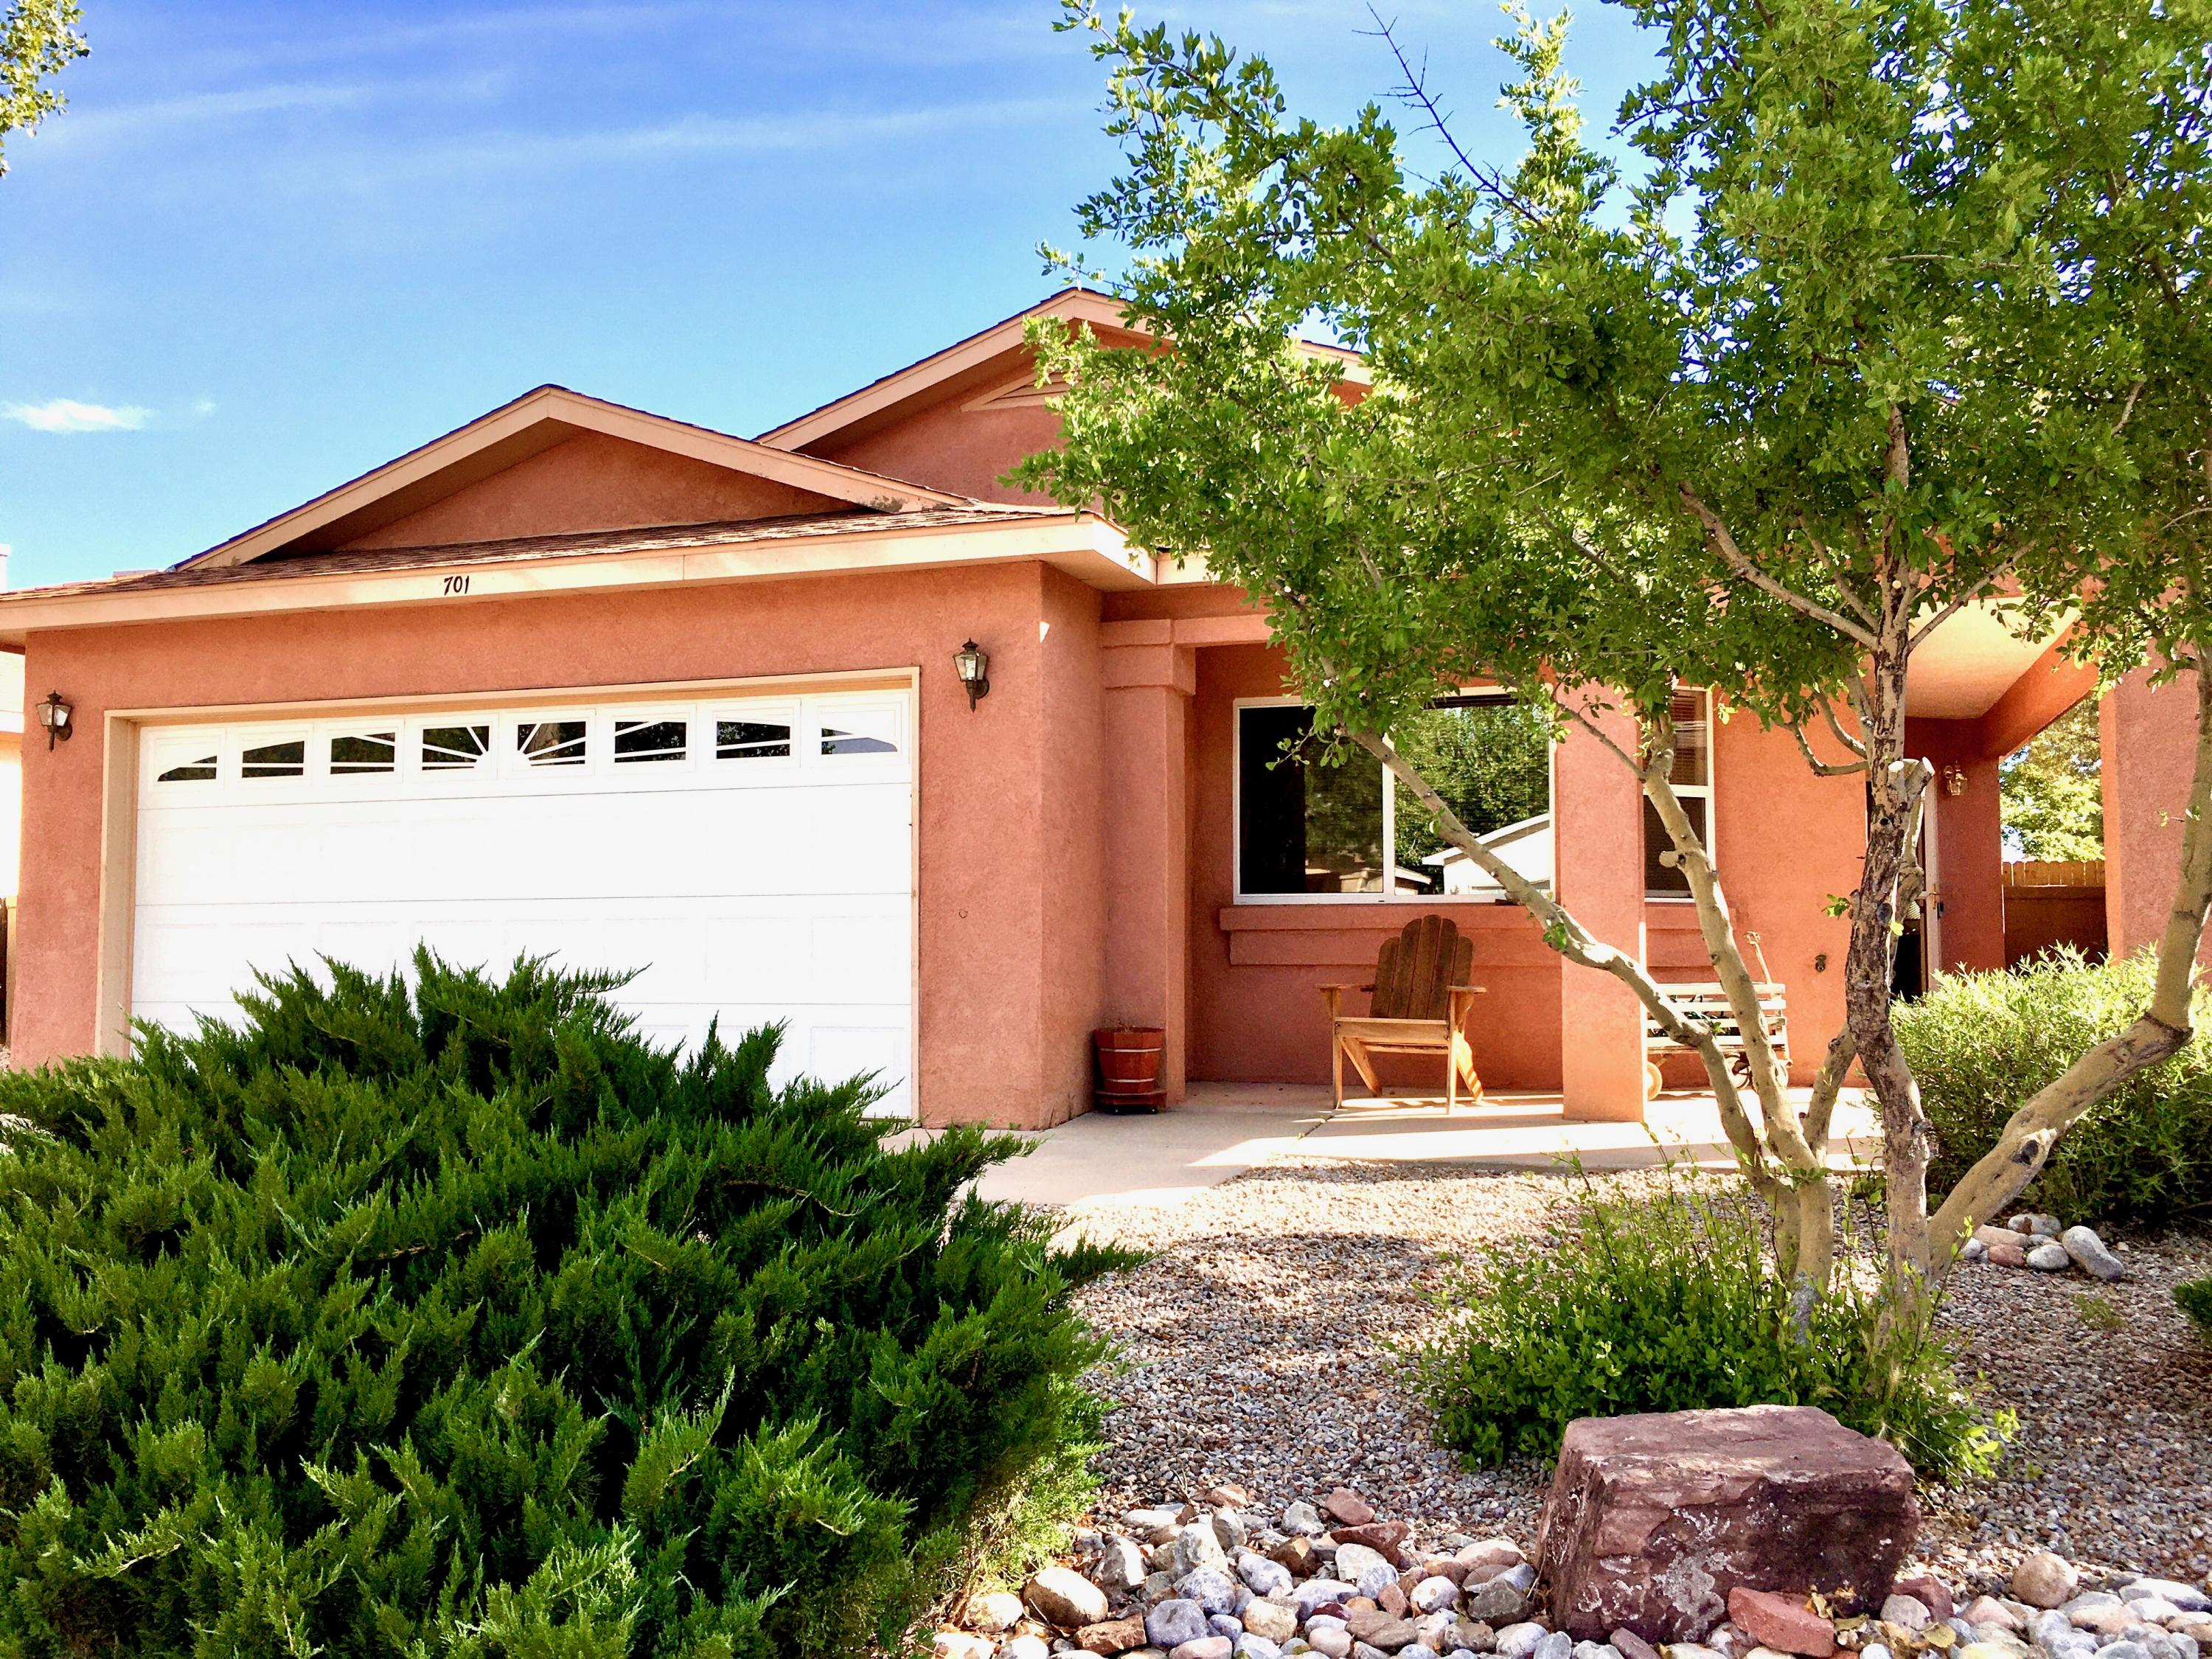 Lovely ''Daisy Model'' in Northern Meadows. Close to Las Colinas Elementary. Large great room, spacious country Kitchen w/ pantry. Covered patio. This one won't last long, schedule your private showing today!